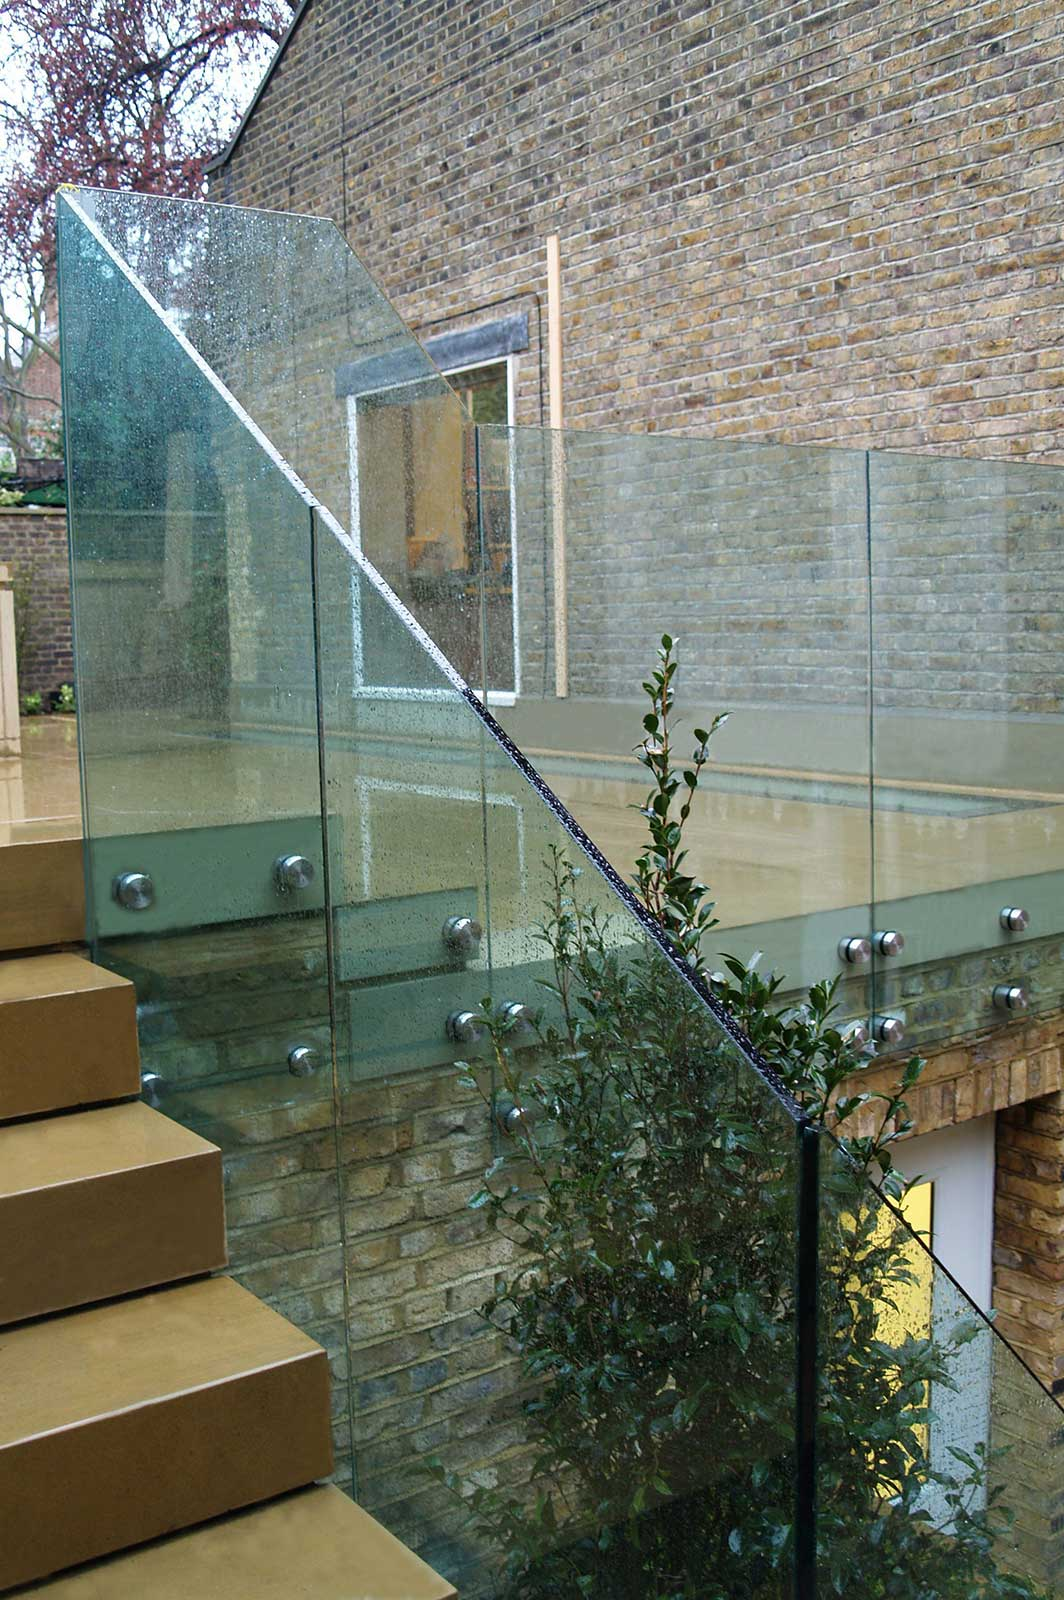 External Frameless Glass Balustrades to Roof Terrace